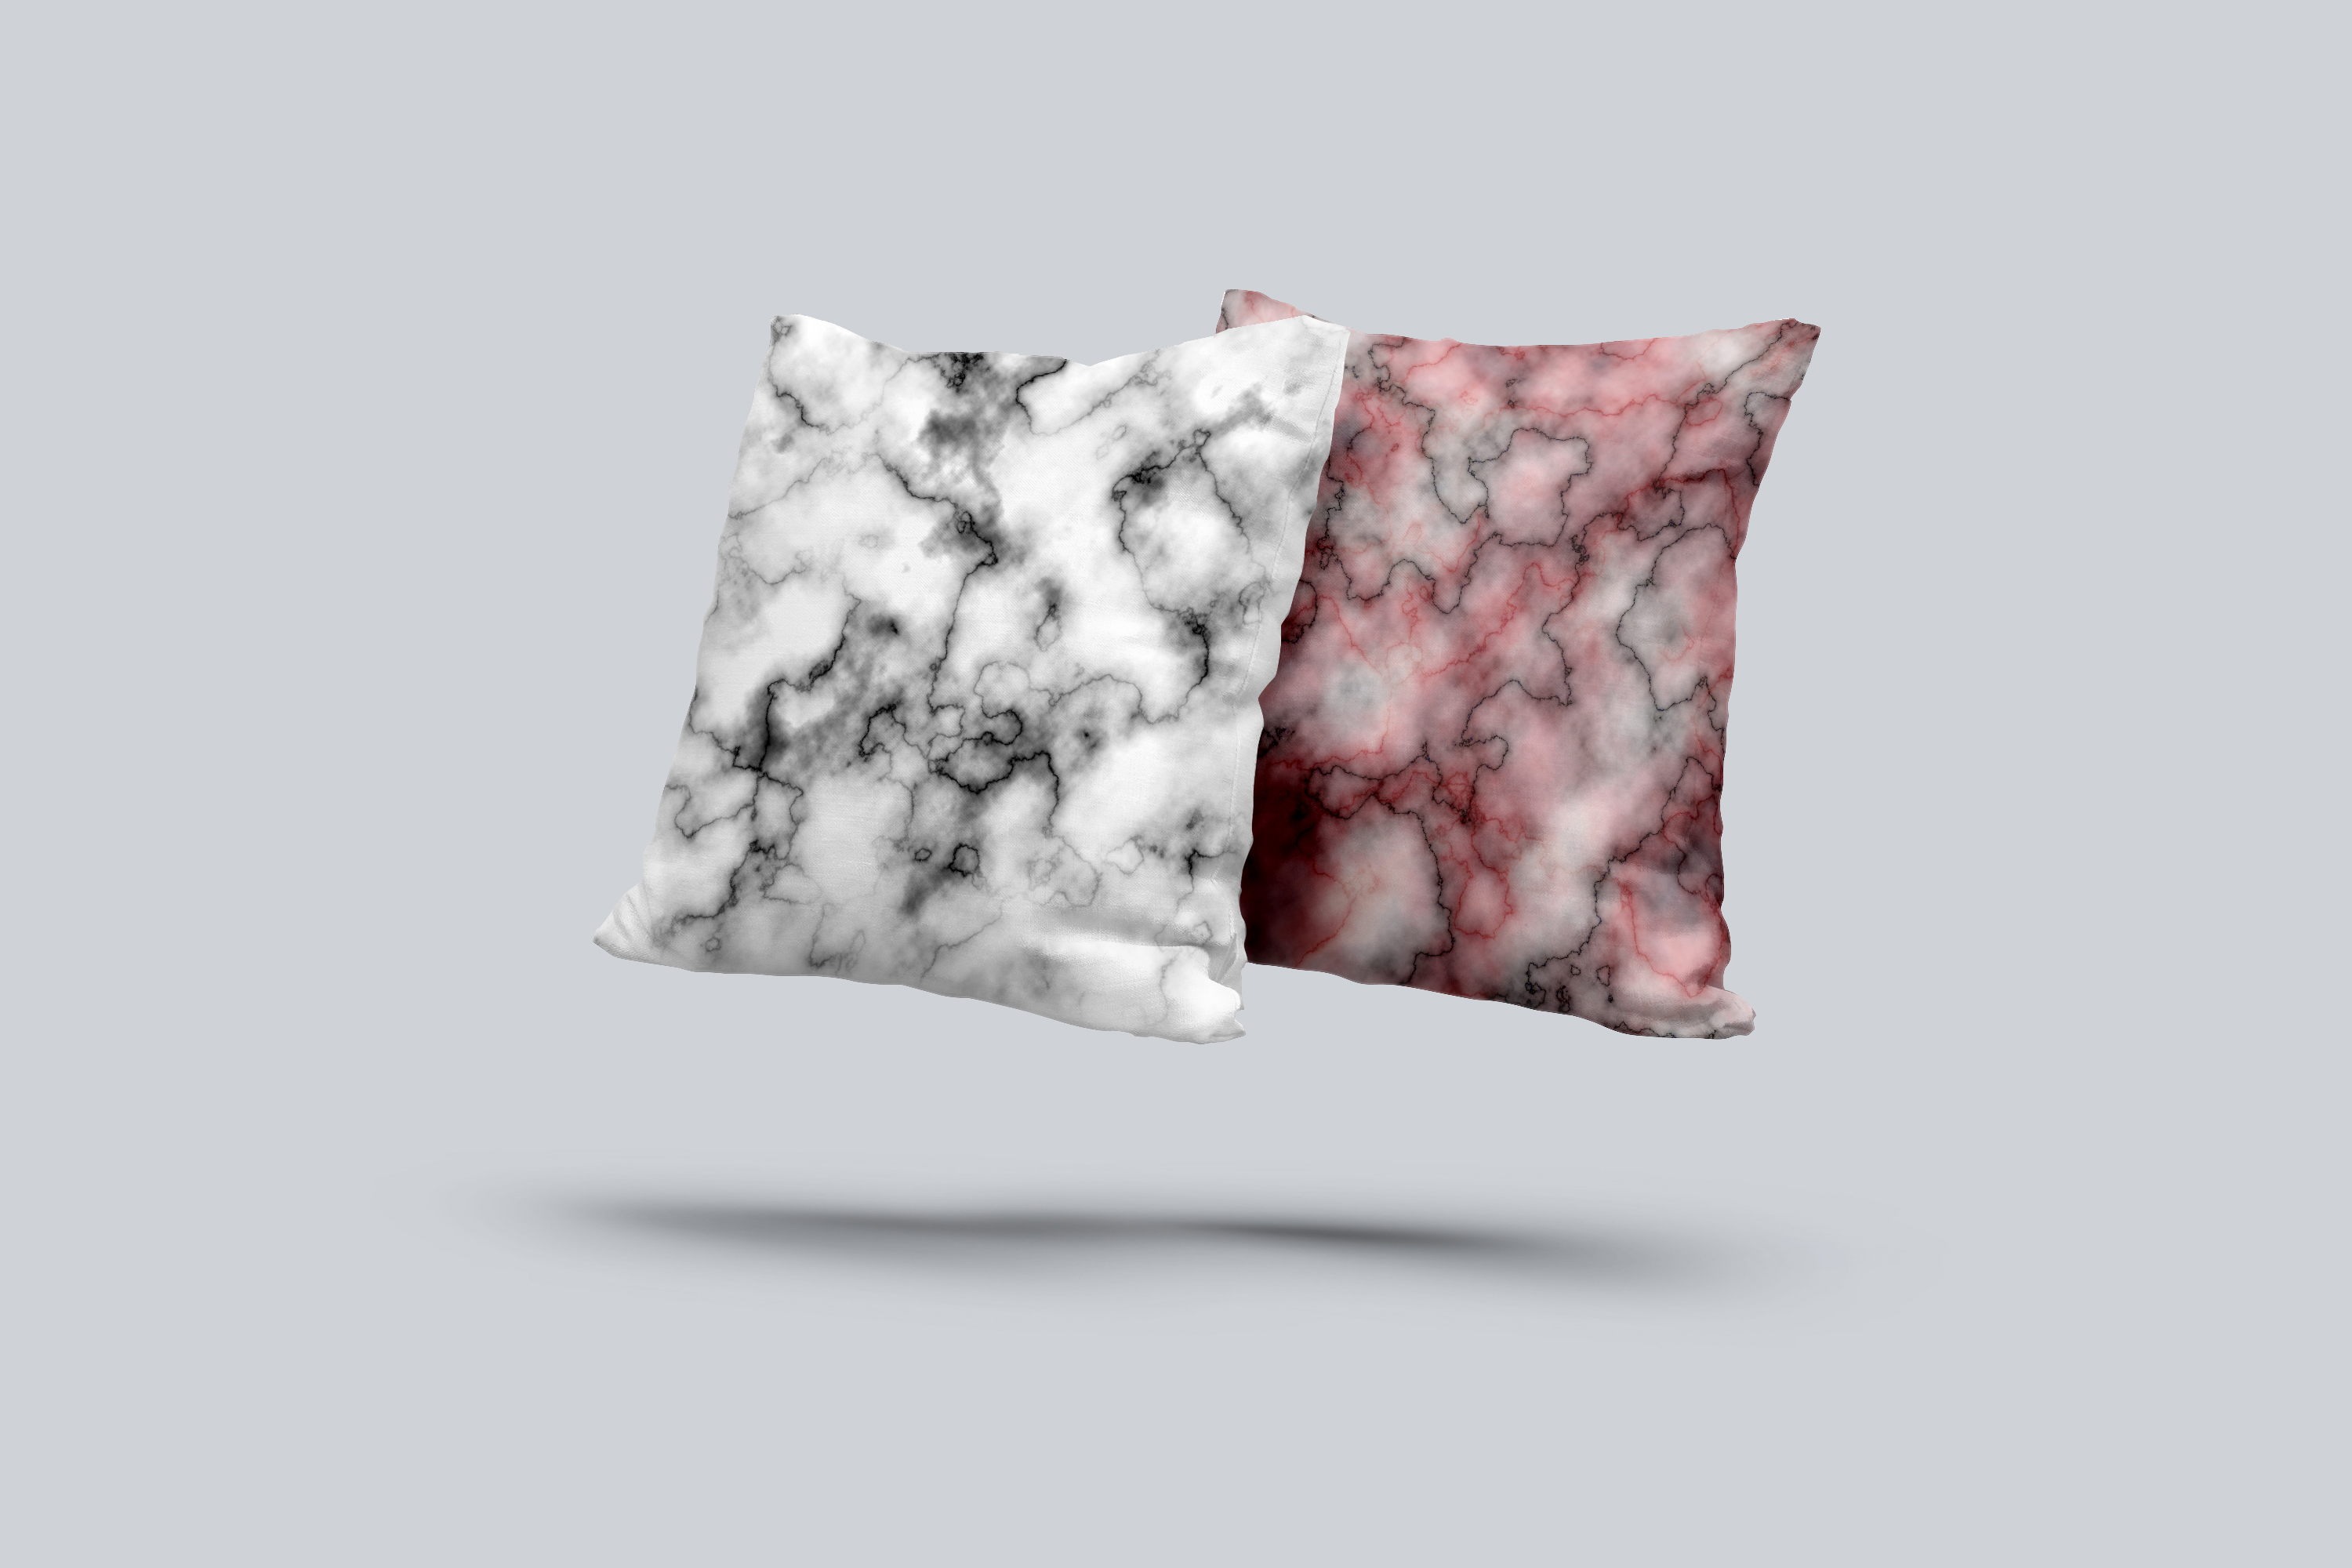 30 Realistic Marble Textures - JPG example image 6